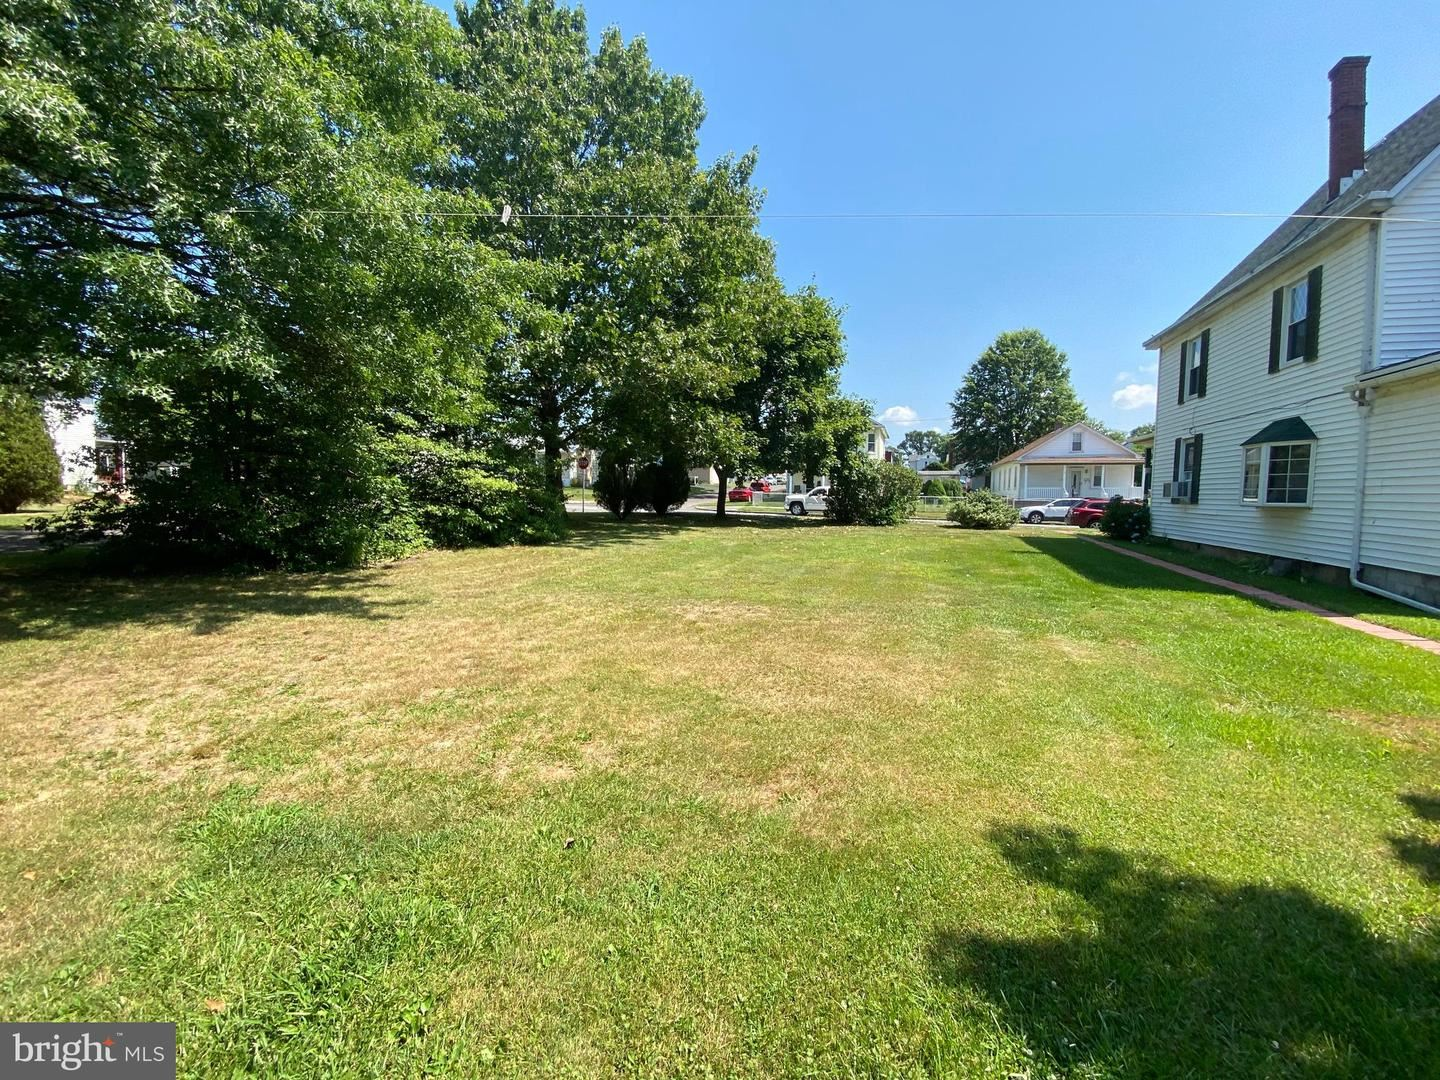 Photo of 205 HUMBIRD ST, CUMBERLAND, MD 21502 (MLS # MDAL134678)